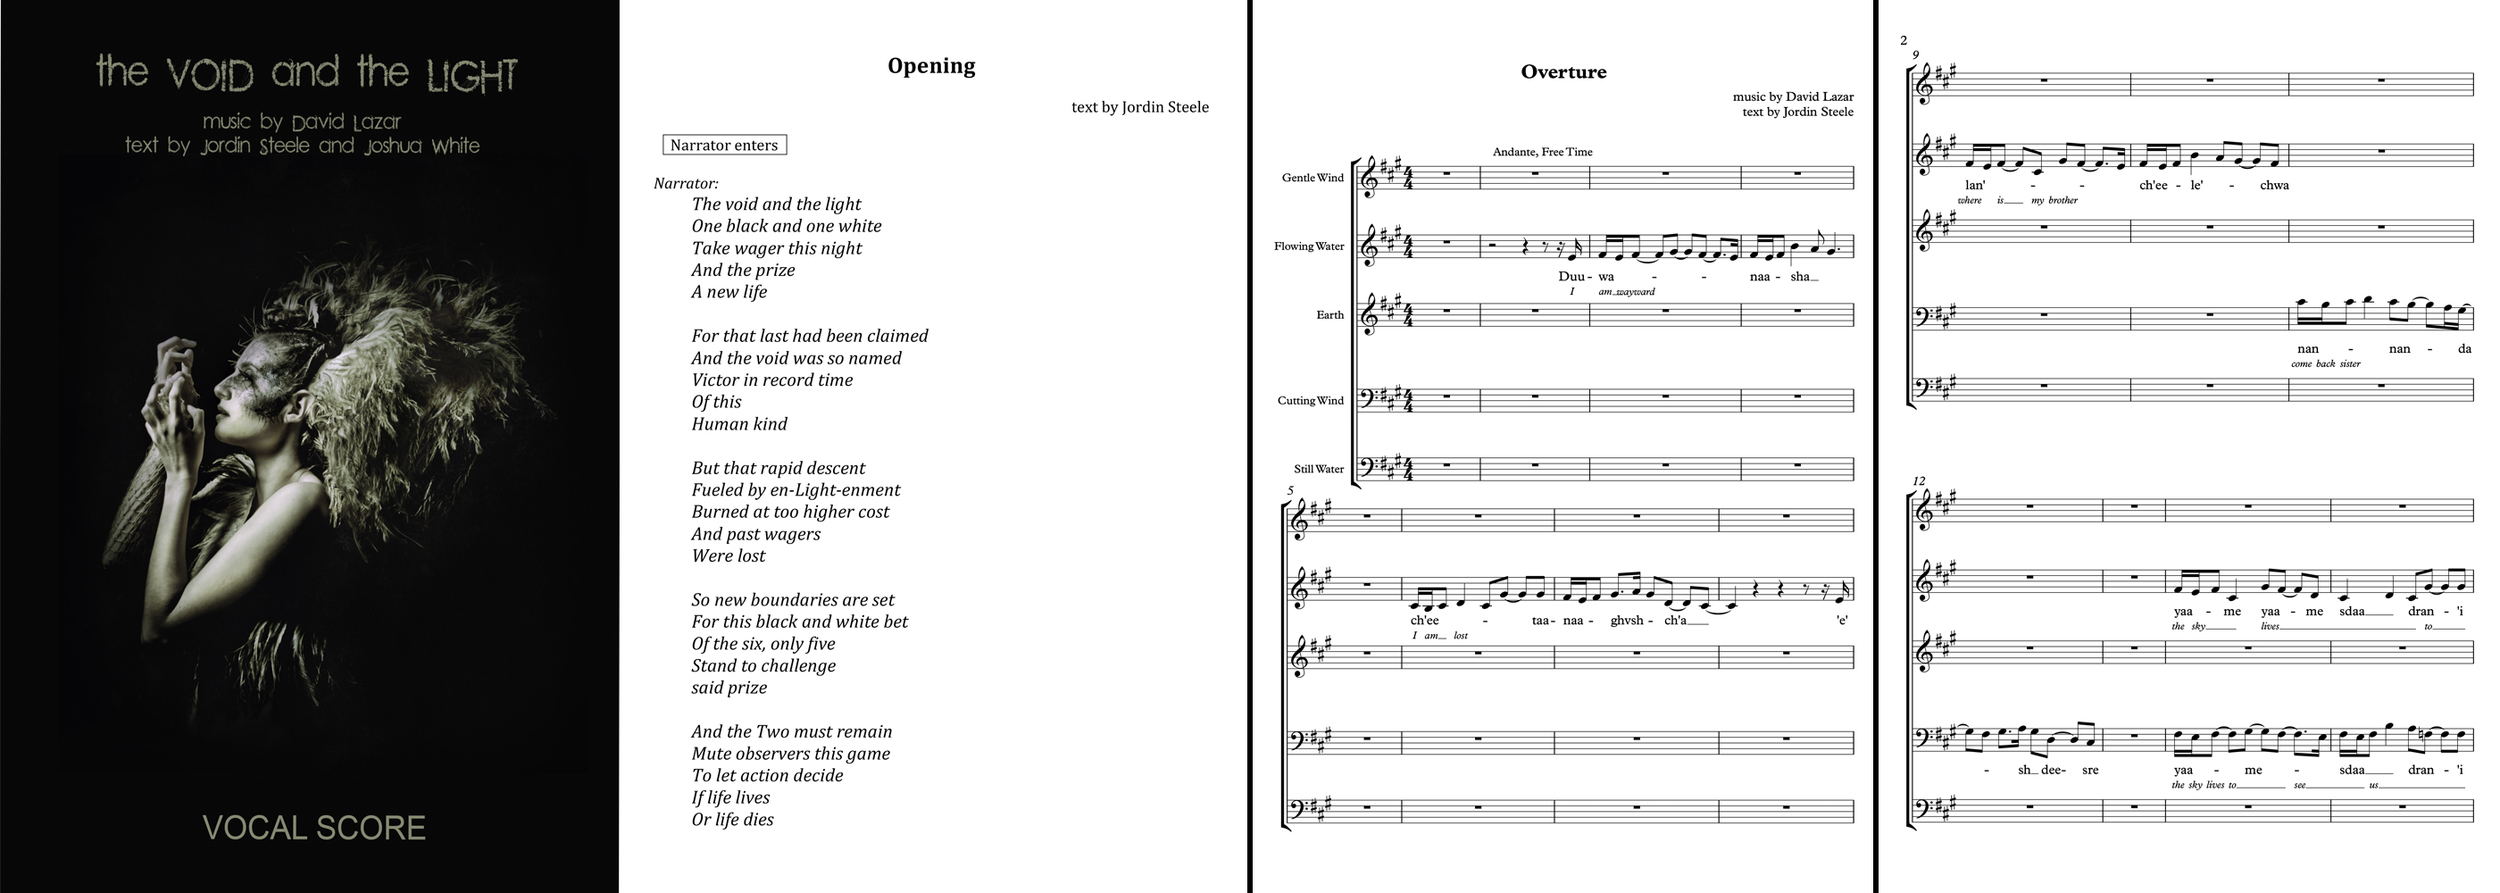 View the Vocal Score